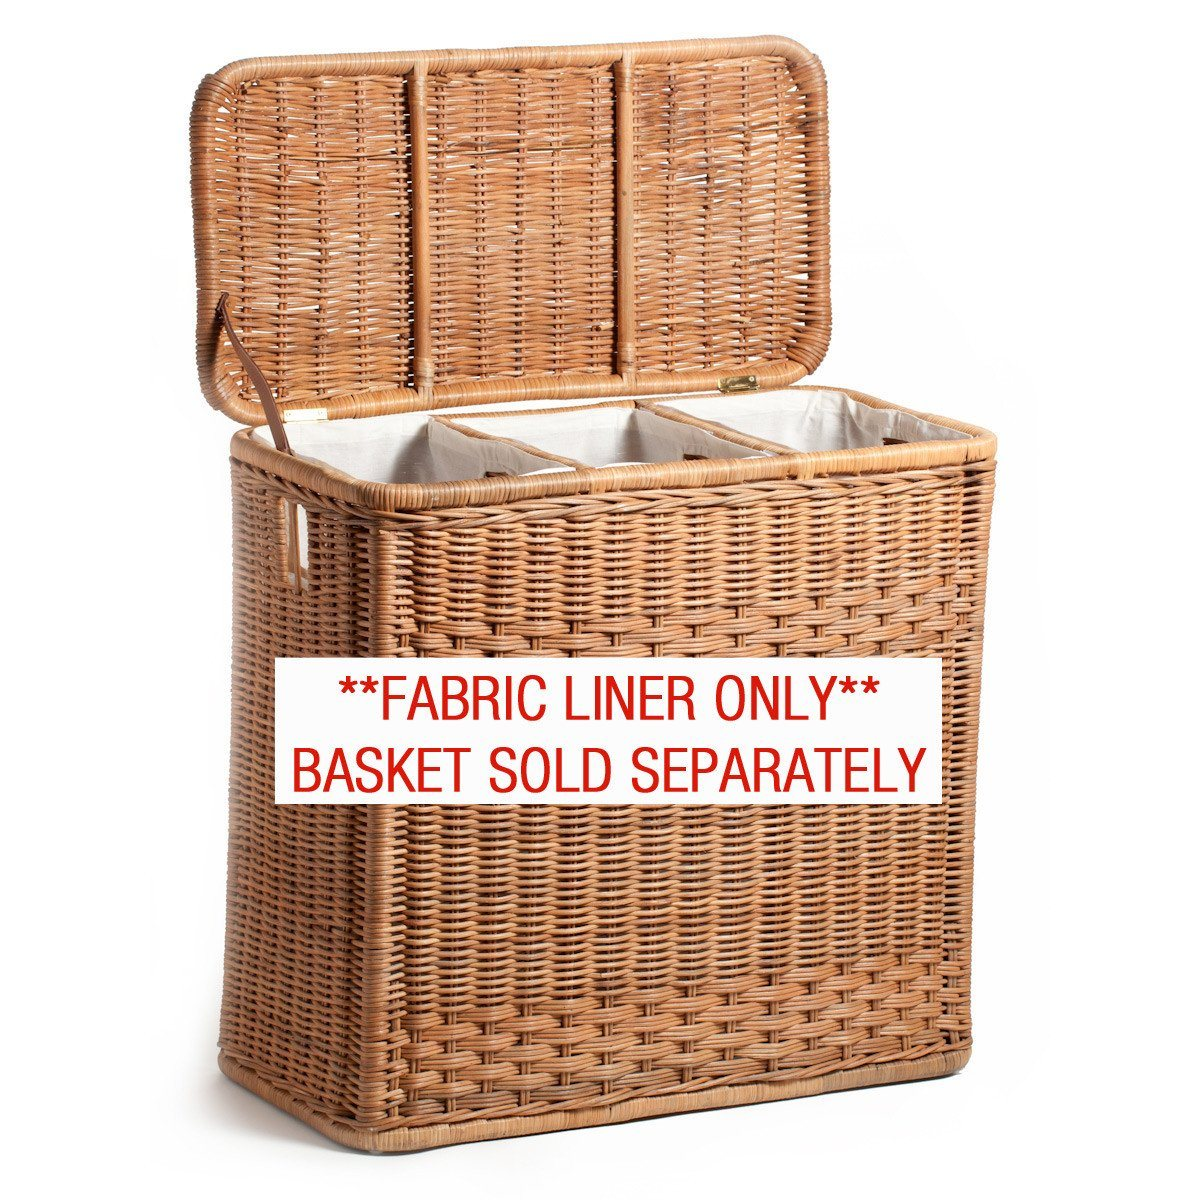 Fabric Liner for 3-Compartment Wicker Laundry H&er basket sold separately | The Basket  sc 1 st  The Basket Lady & Fabric Liner For 3-Compartment Wicker Laundry Hamper - The Basket Lady